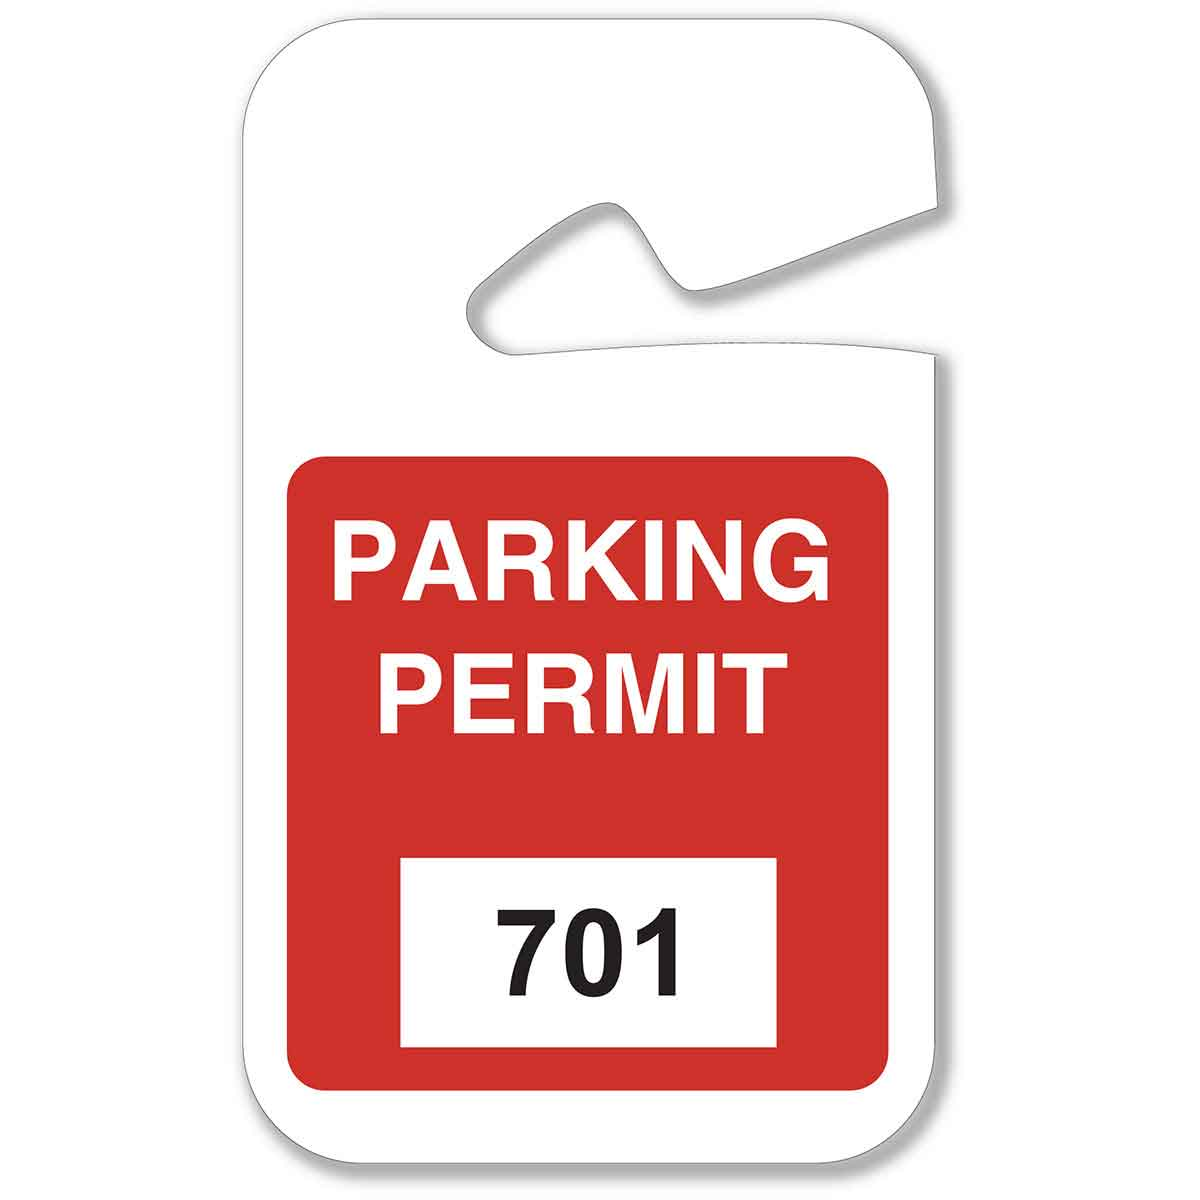 hanging parking pass template - brady part 96277 rearview mirror hanging tags